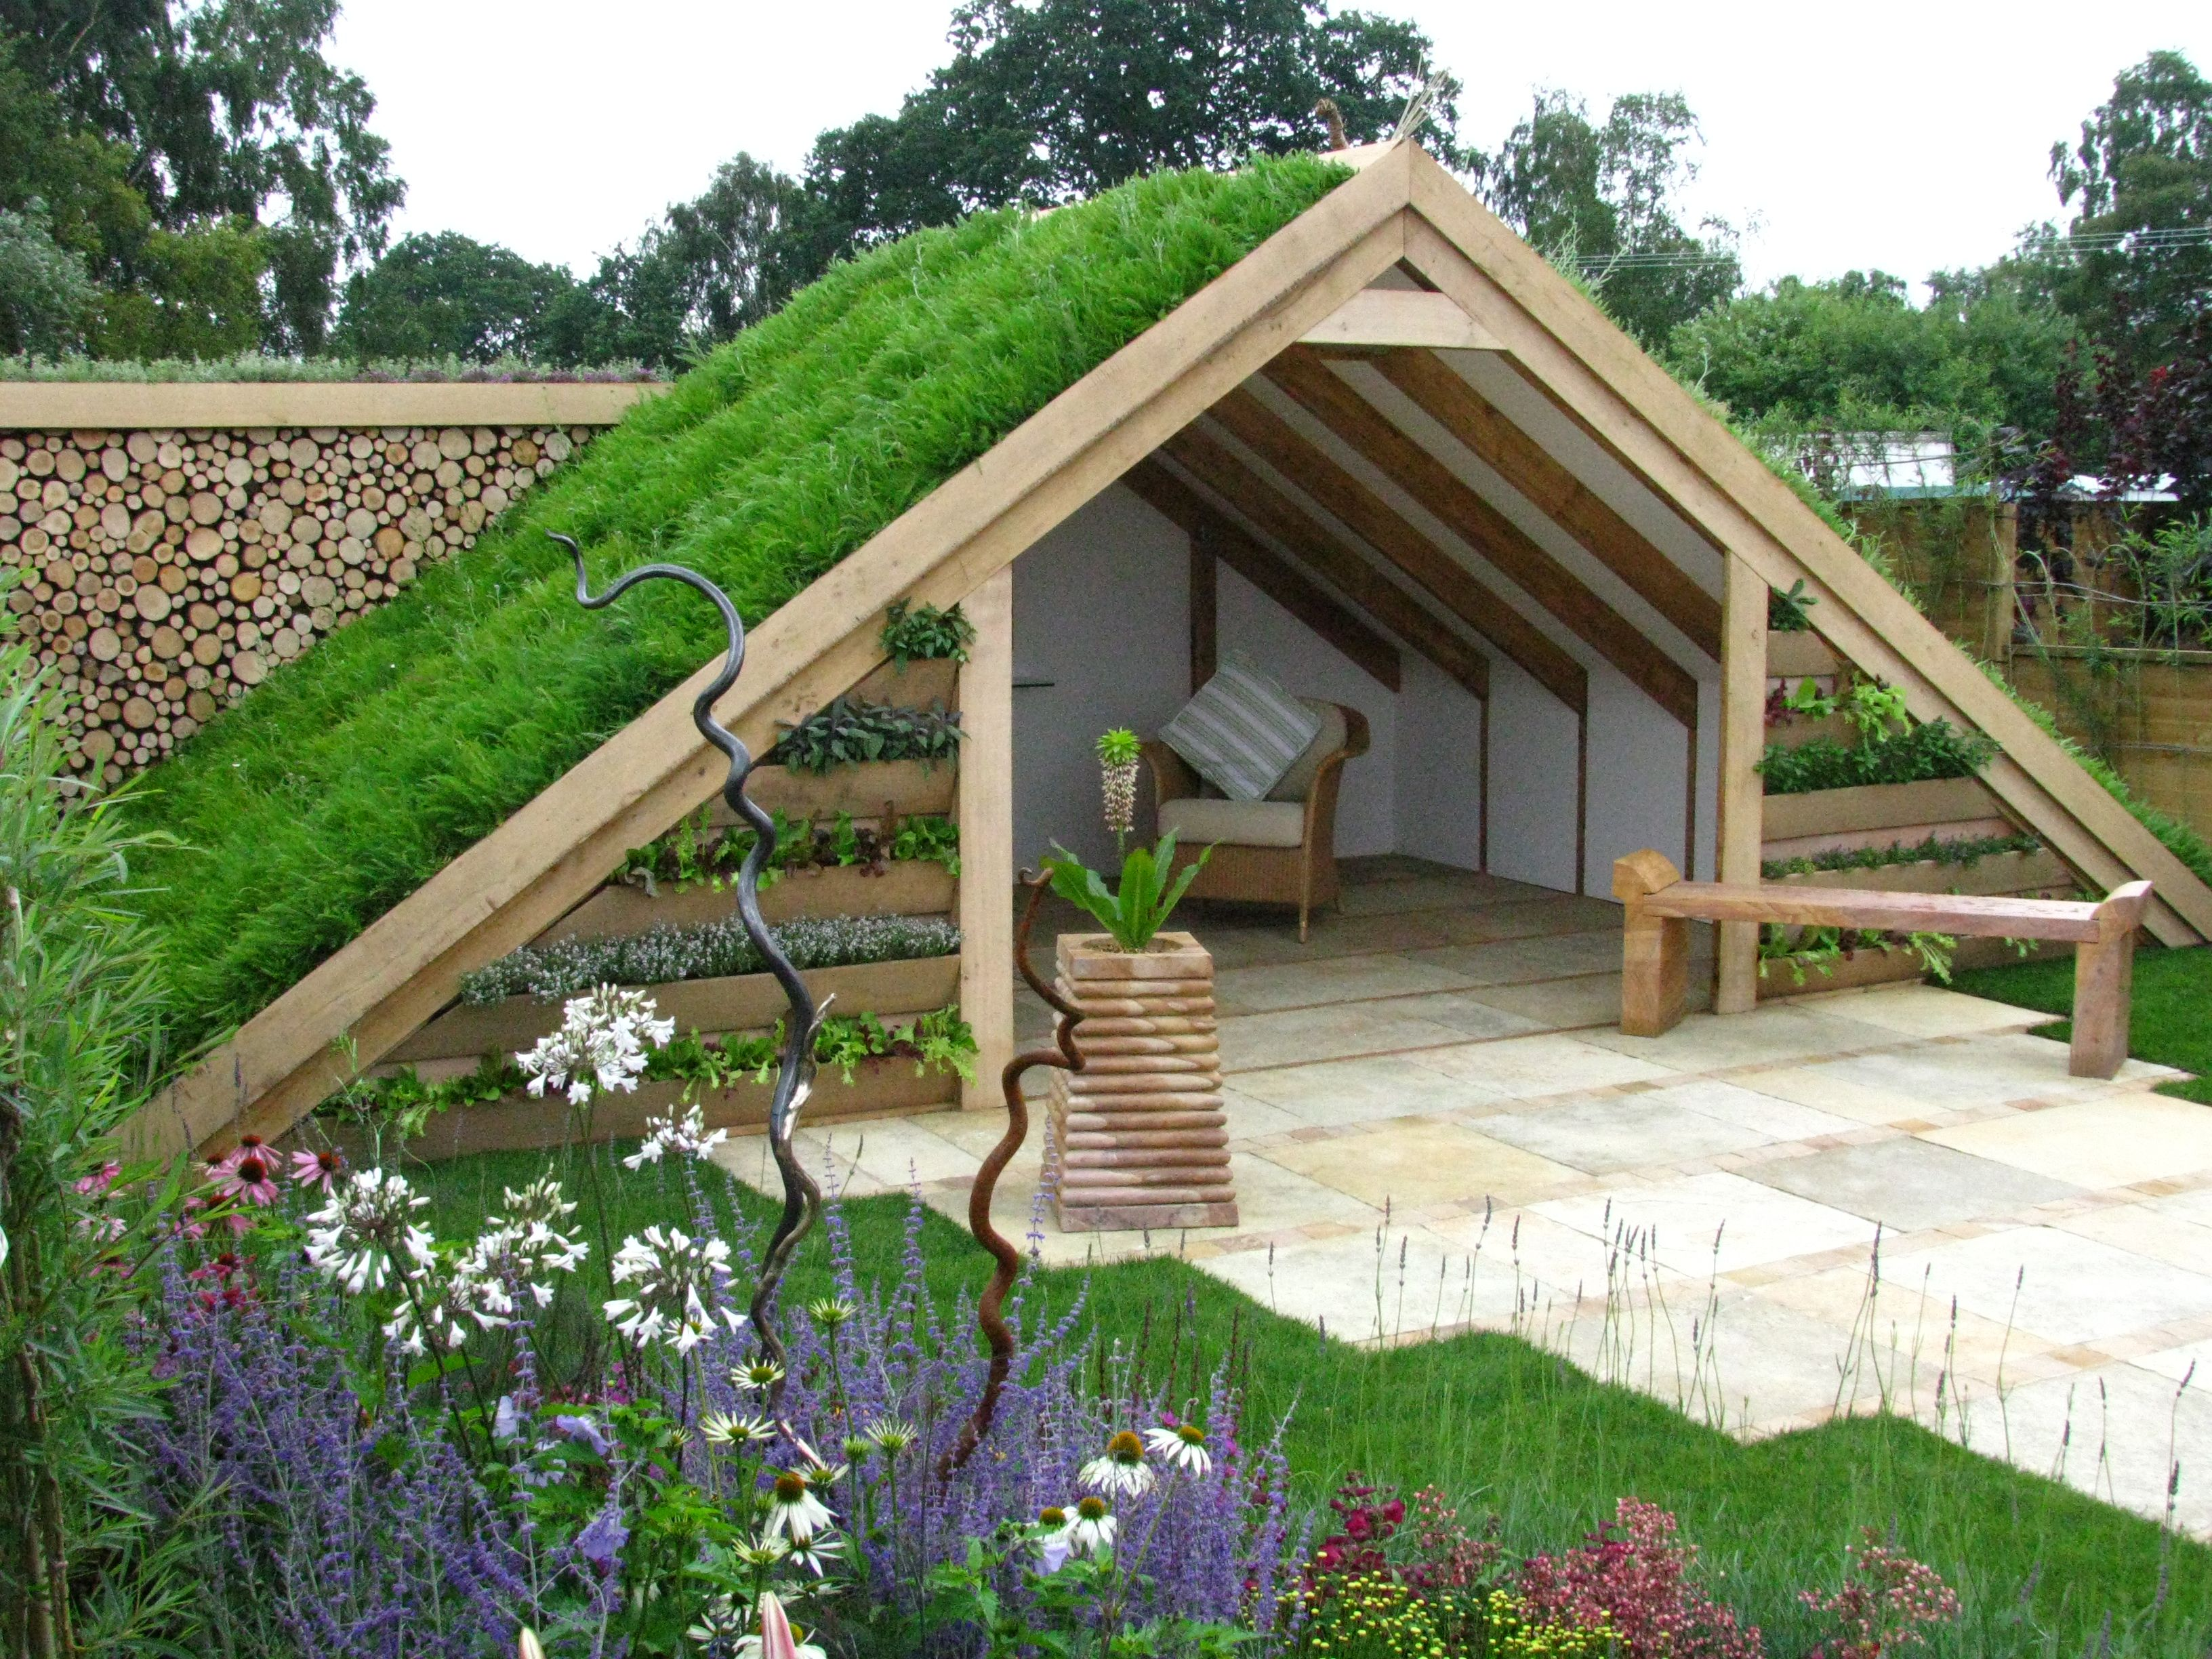 Garden Designs vegetable gardens Green Roof Shed At Chasewater Innovation Centre Brownhills Staffordshire Uk Photo Shed Designgarden